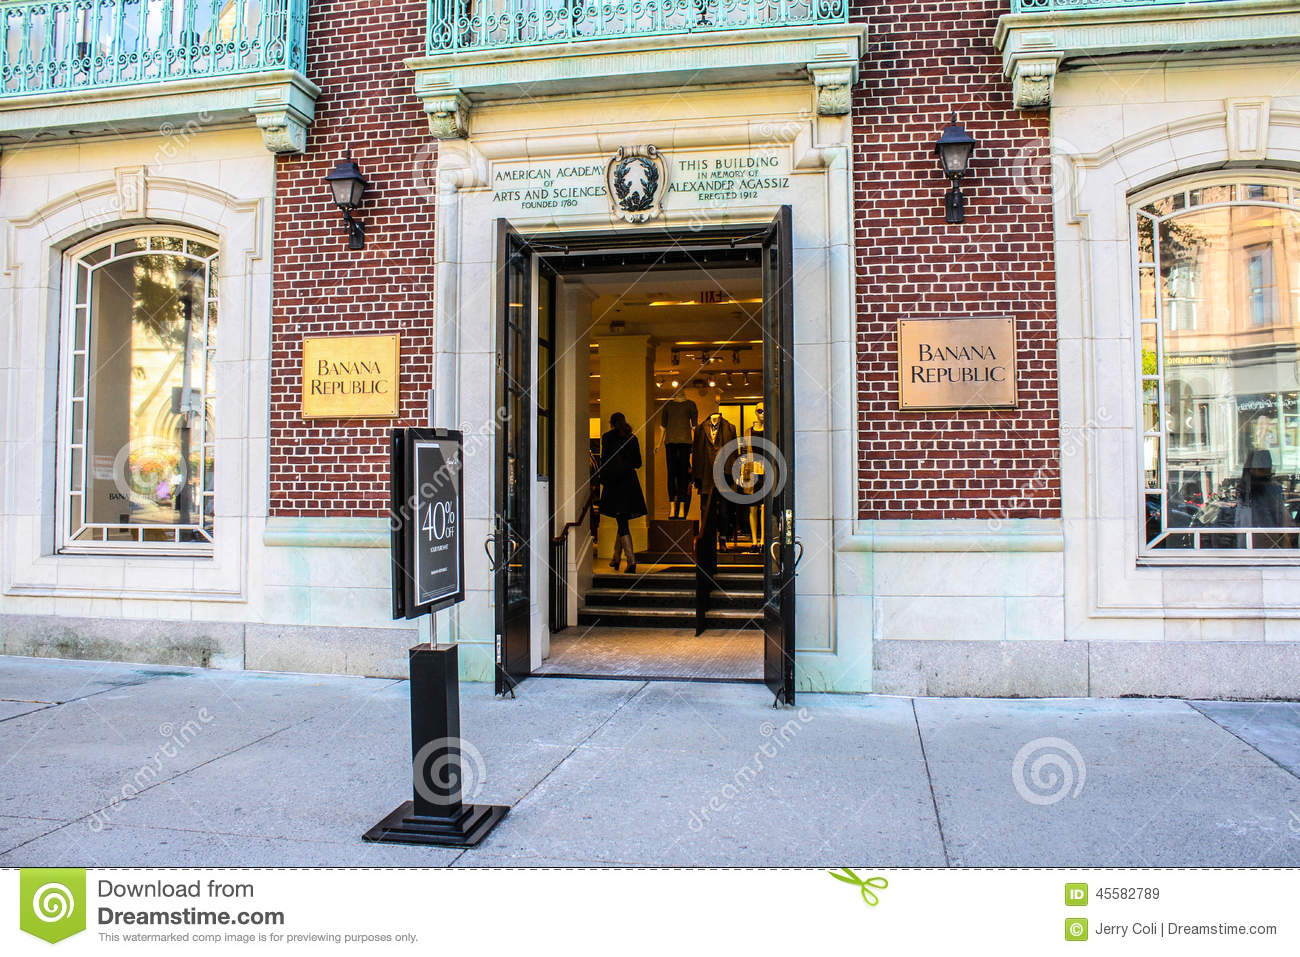 Banana Republic is located at the address State St in Boston, Massachusetts They can be contacted via phone at () for pricing, hours and directions. Banana Republic has an annual sales volume of 2M – 4,,Category: Clothing & Accessories,Shopping.